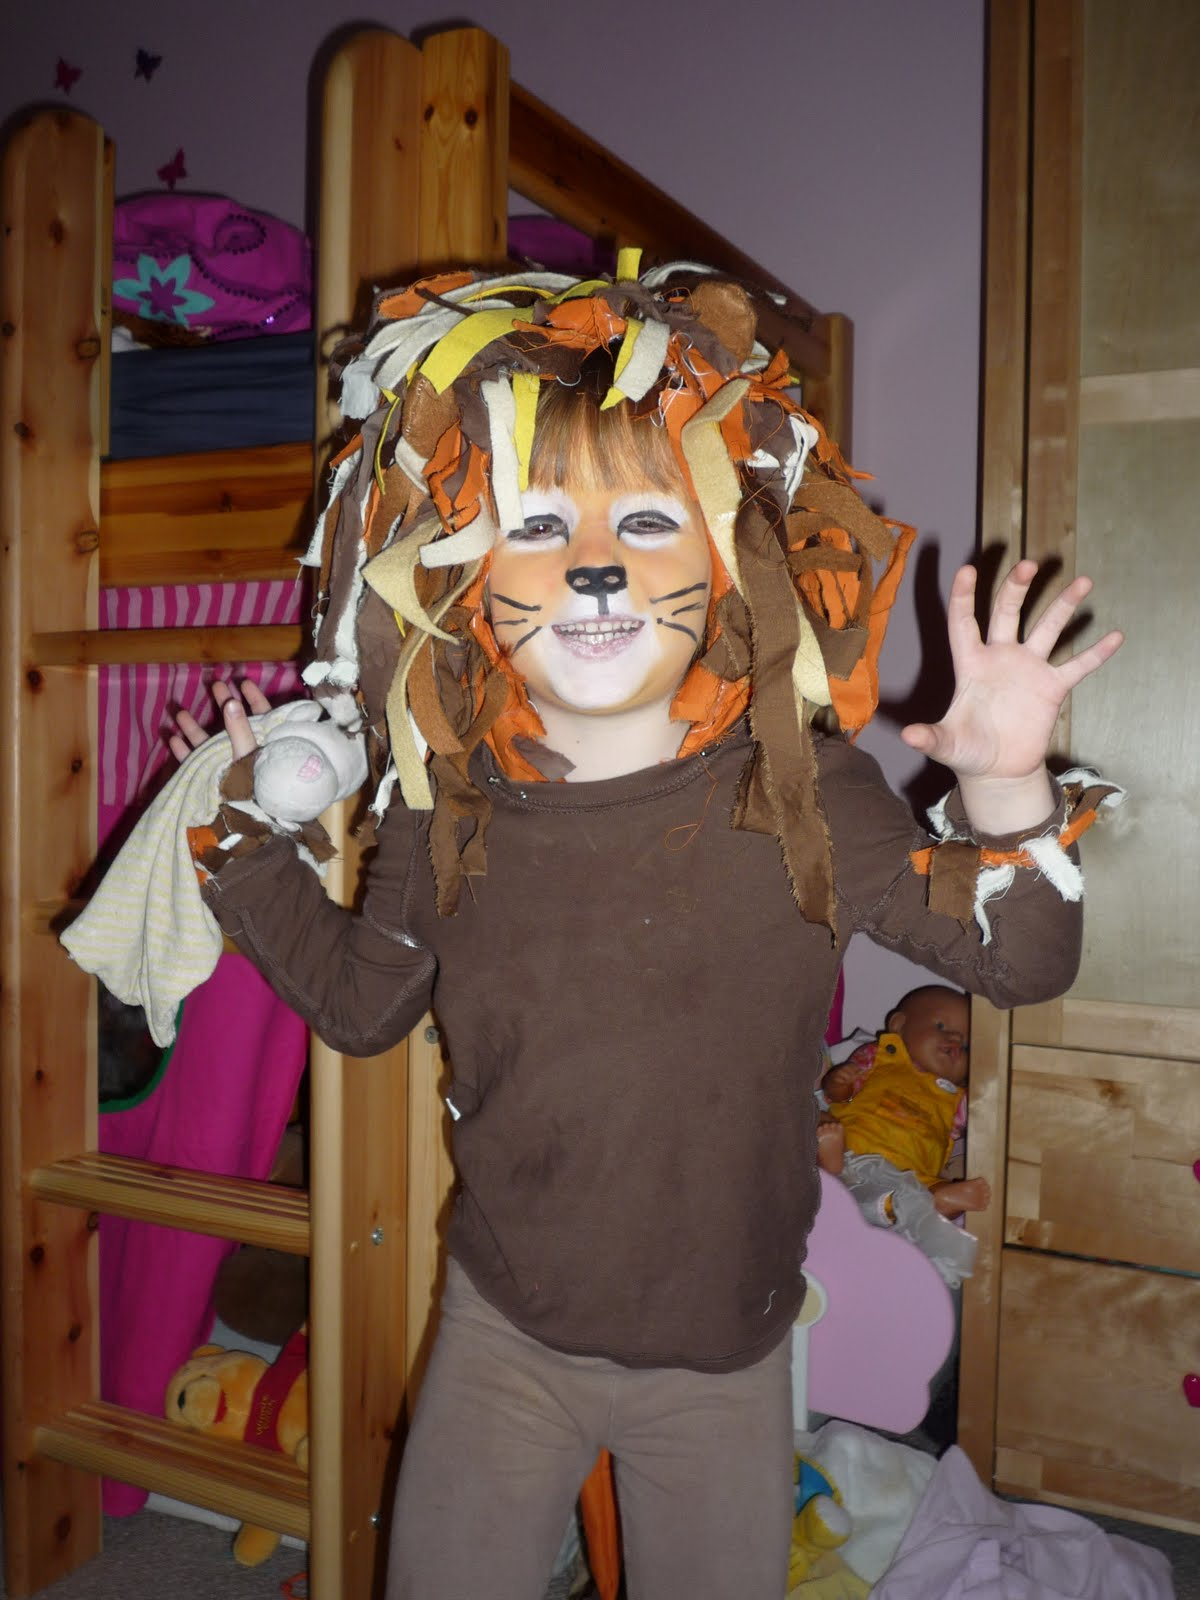 DIY Lion Costume http://ohsewwonderful.blogspot.com/2011/02/how-to-make-lion-costume.html